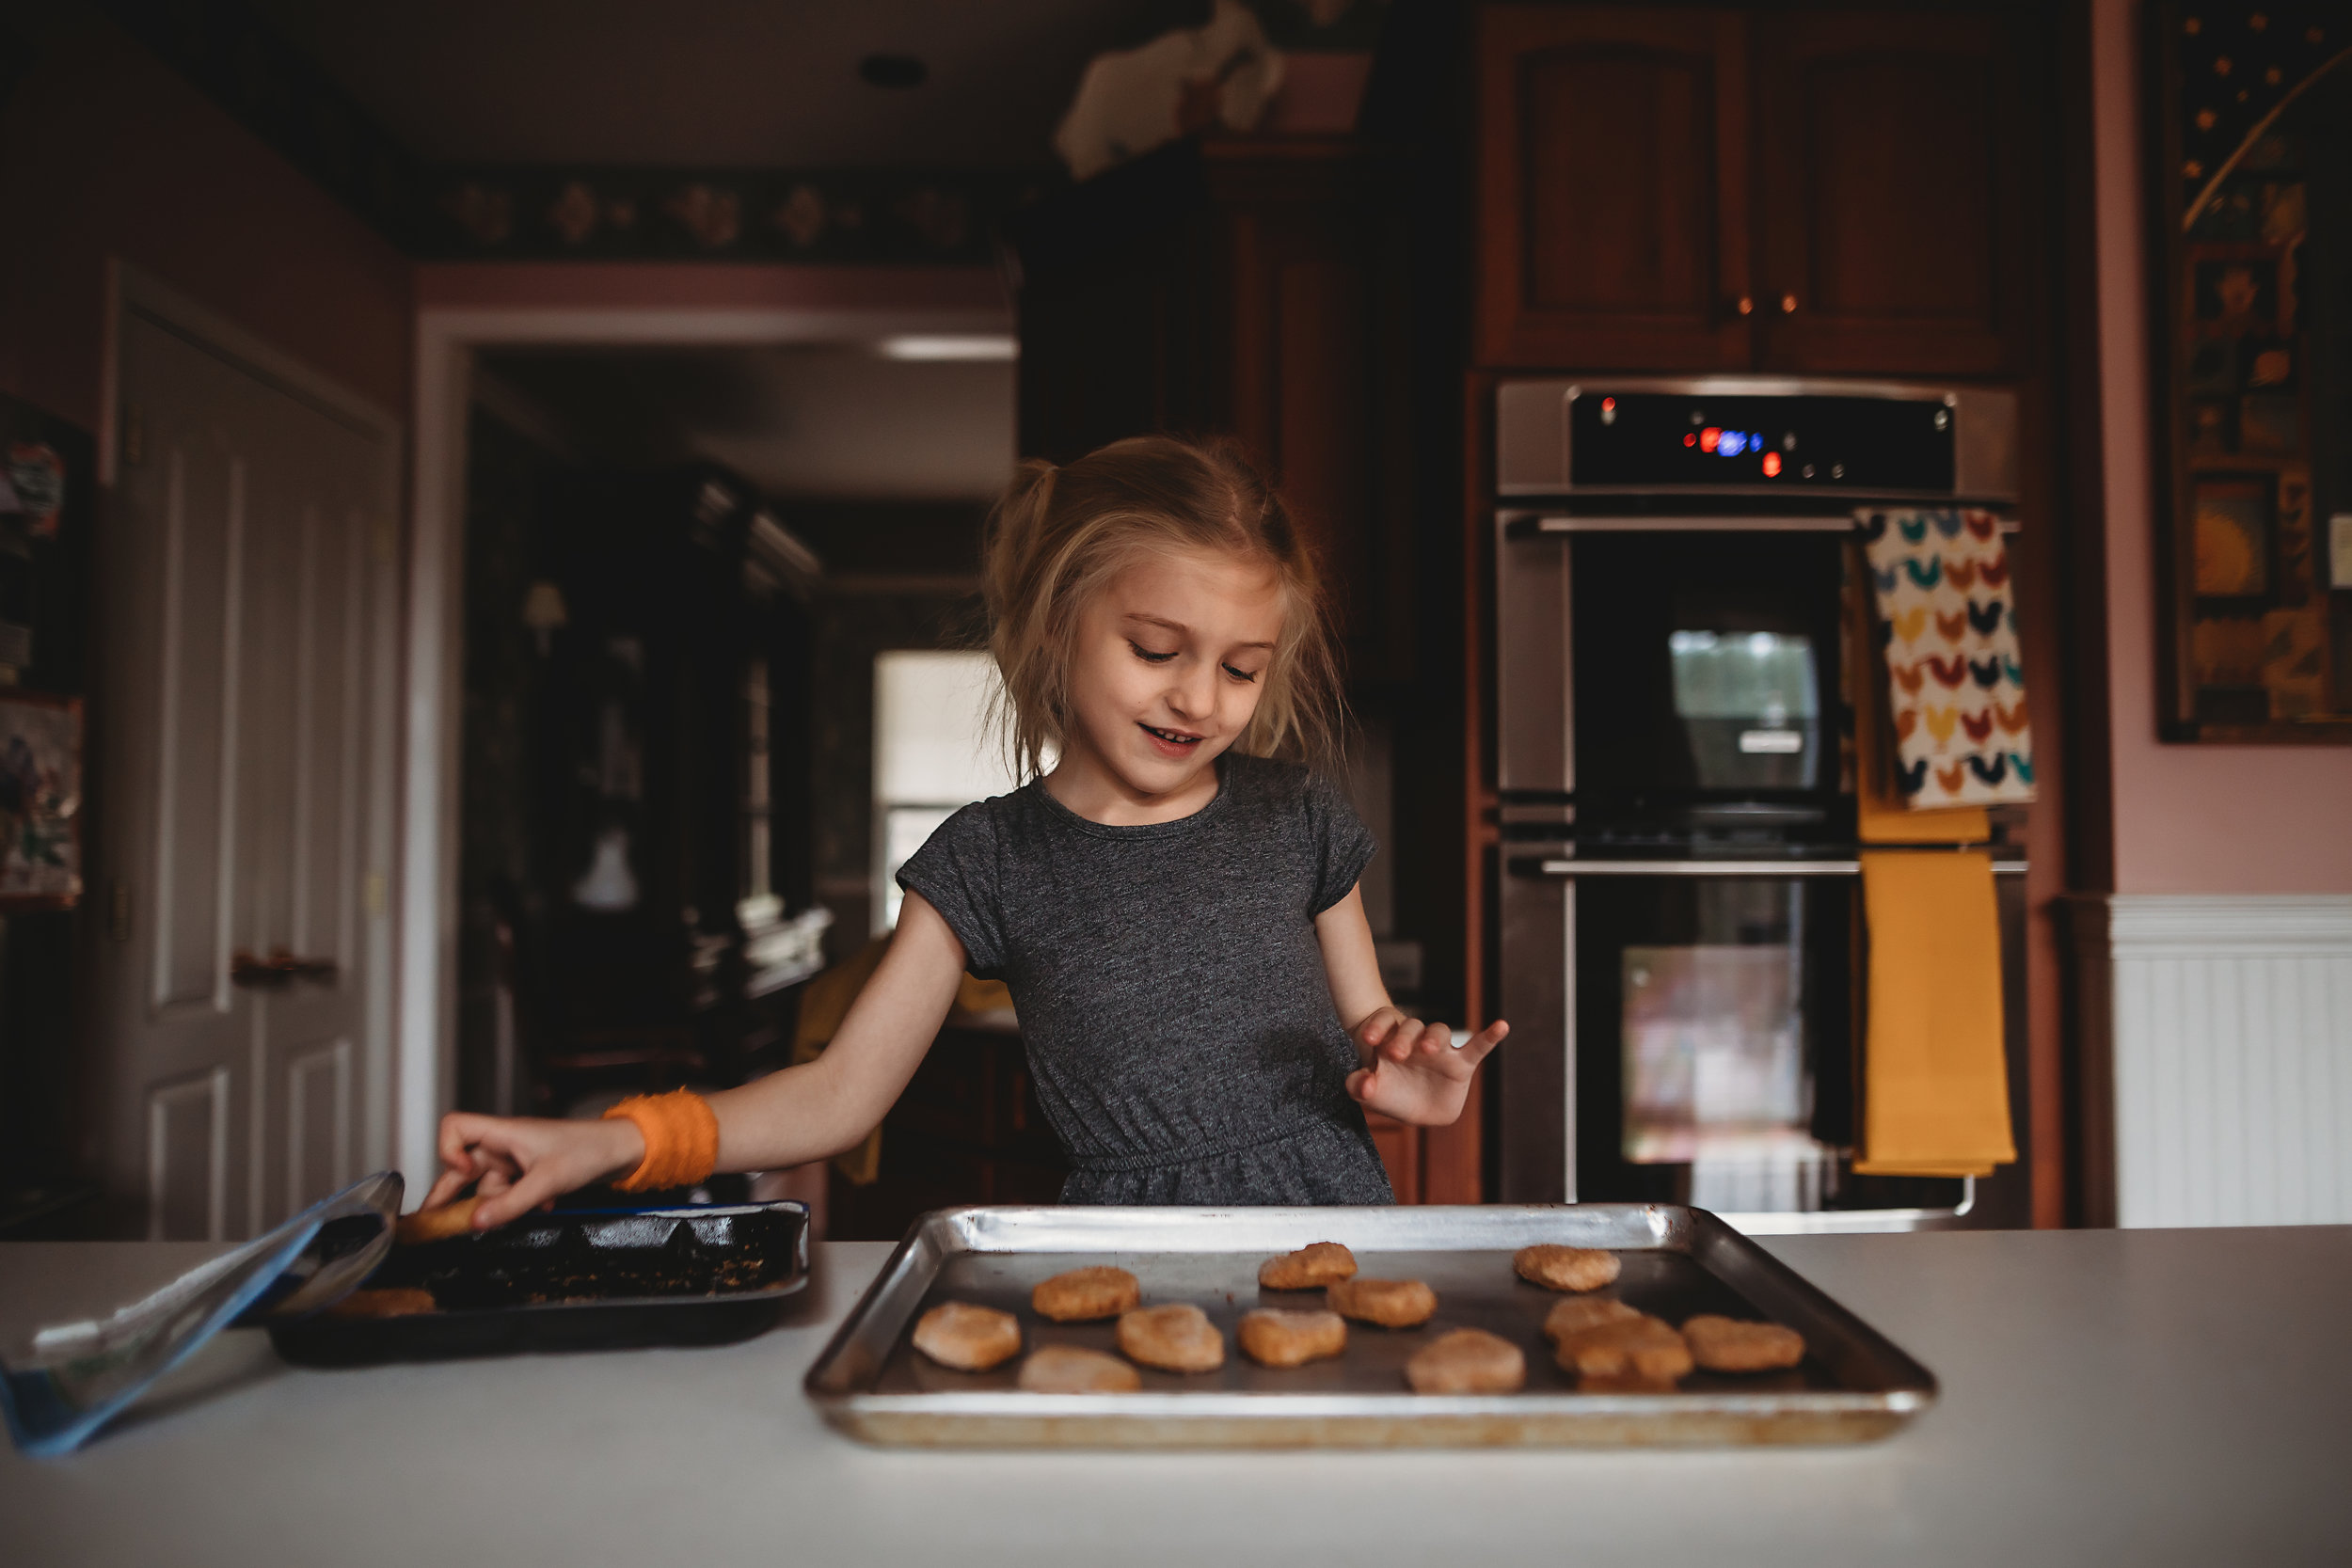 hello-olivia-photography-long-island-photographer-lifestyle-suffolk-eating-child-cooking-kitchen.jpg